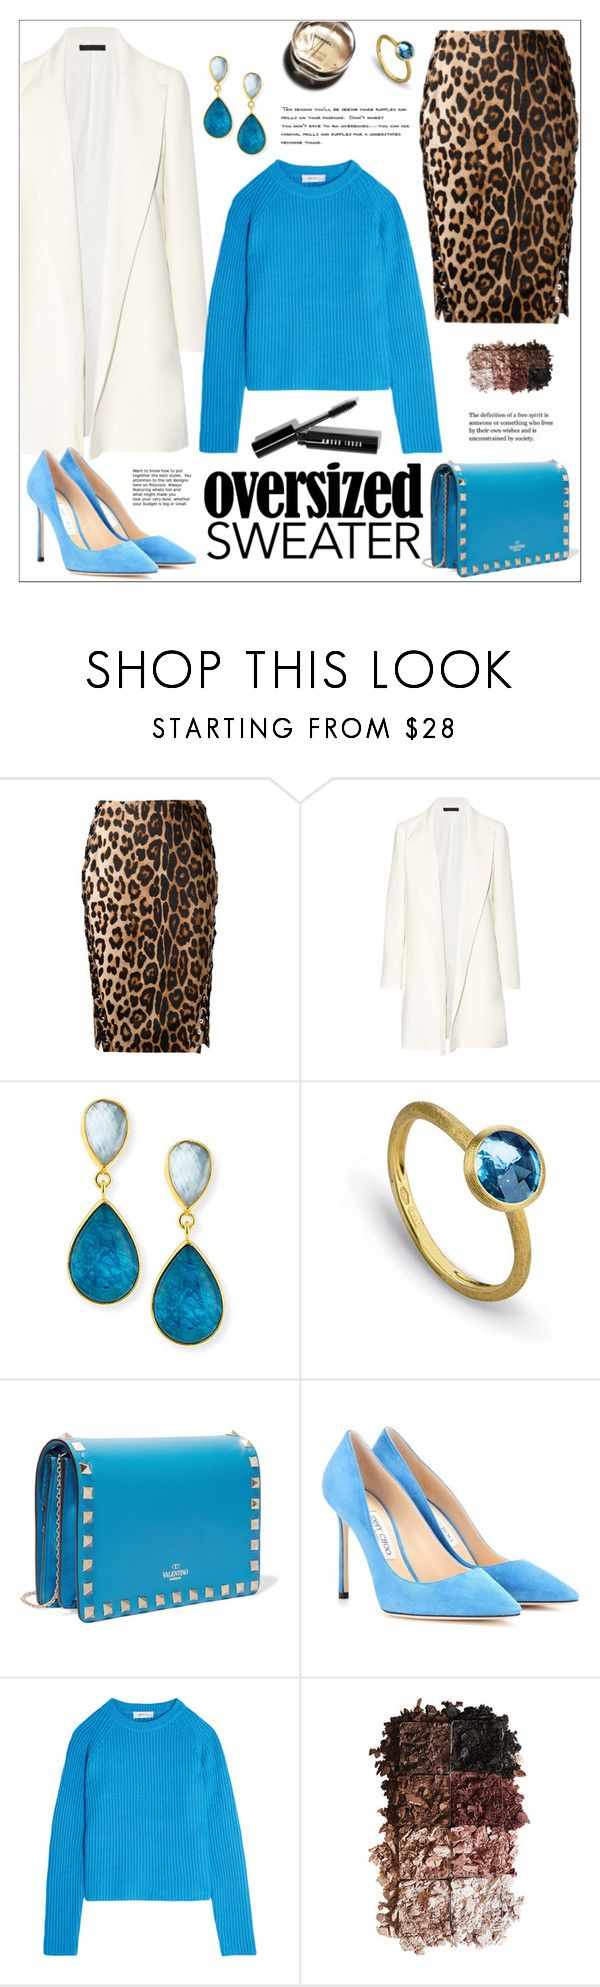 """""""Fall Sweater"""" by ms-mandarinka ❤ liked on Polyvore featuring Altuzarra, The Row, Dina Mackney, Marco Bicego, Valentino, Jimmy Choo, Carven, LORAC, Chanel and Bobbi Brown Cosmetics"""